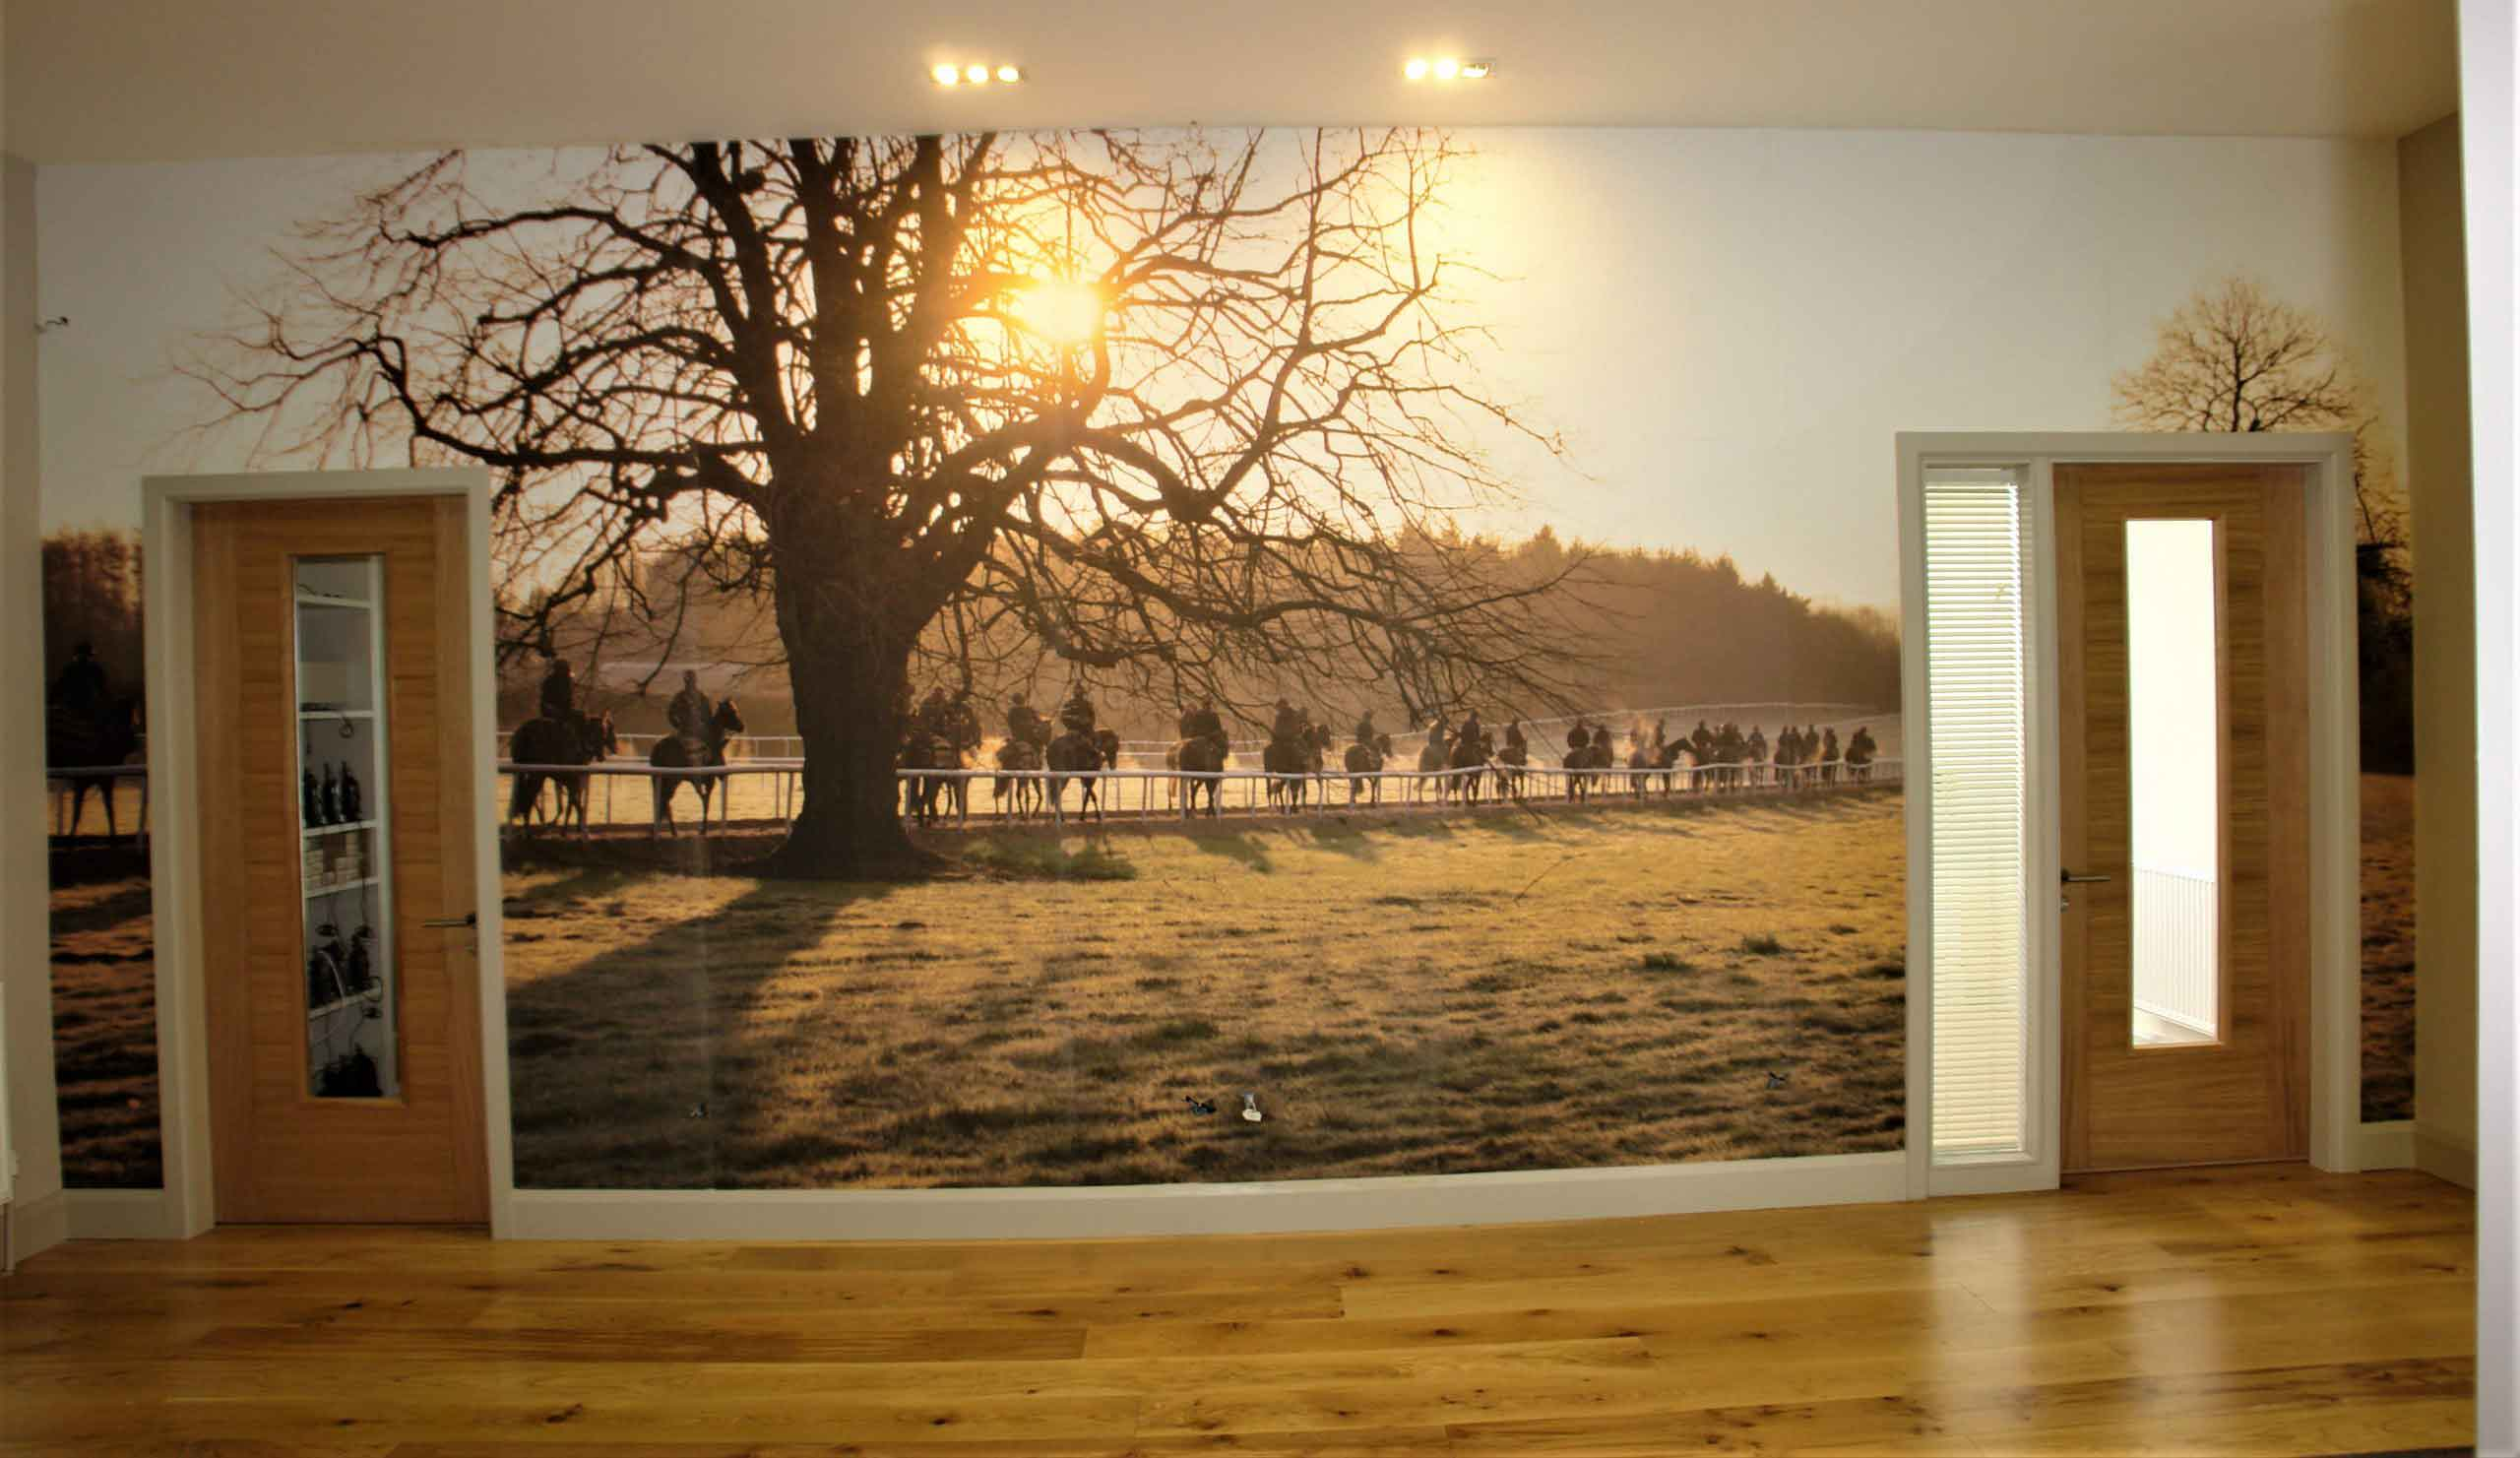 Coolmore Stud Office Wall Vinyl graphics